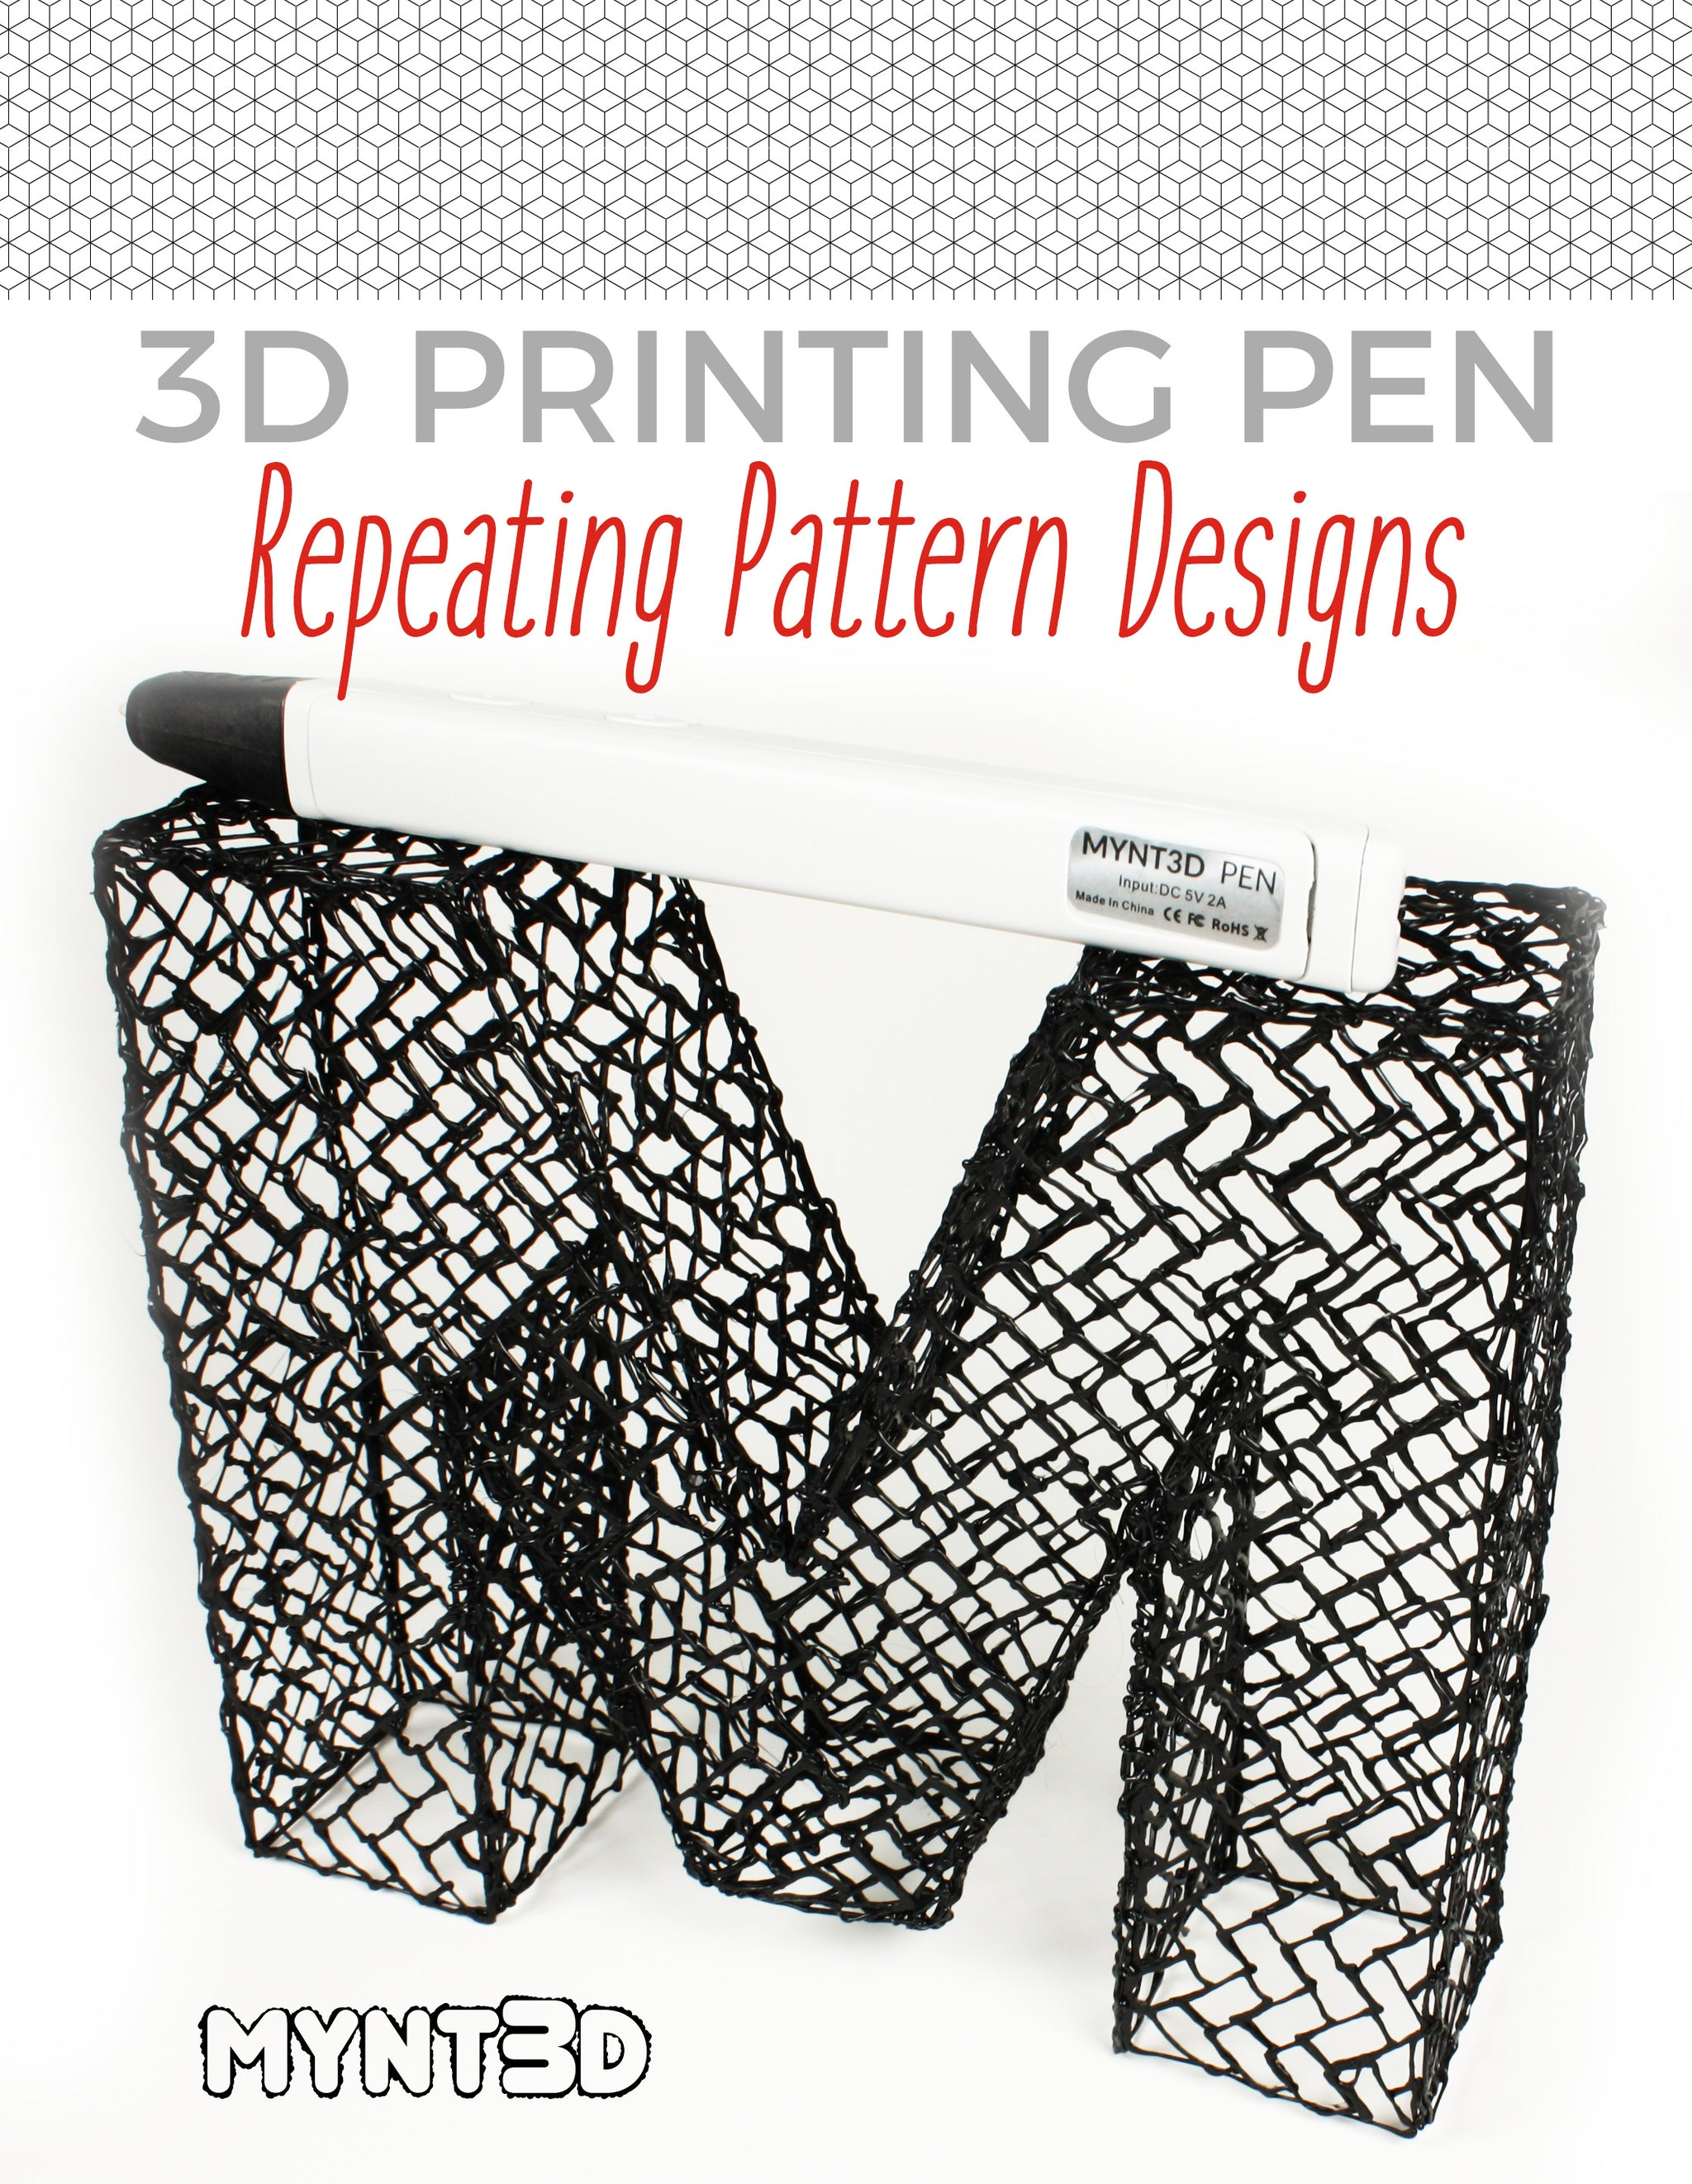 Design Patterns To Draw In 3d Mynt3d